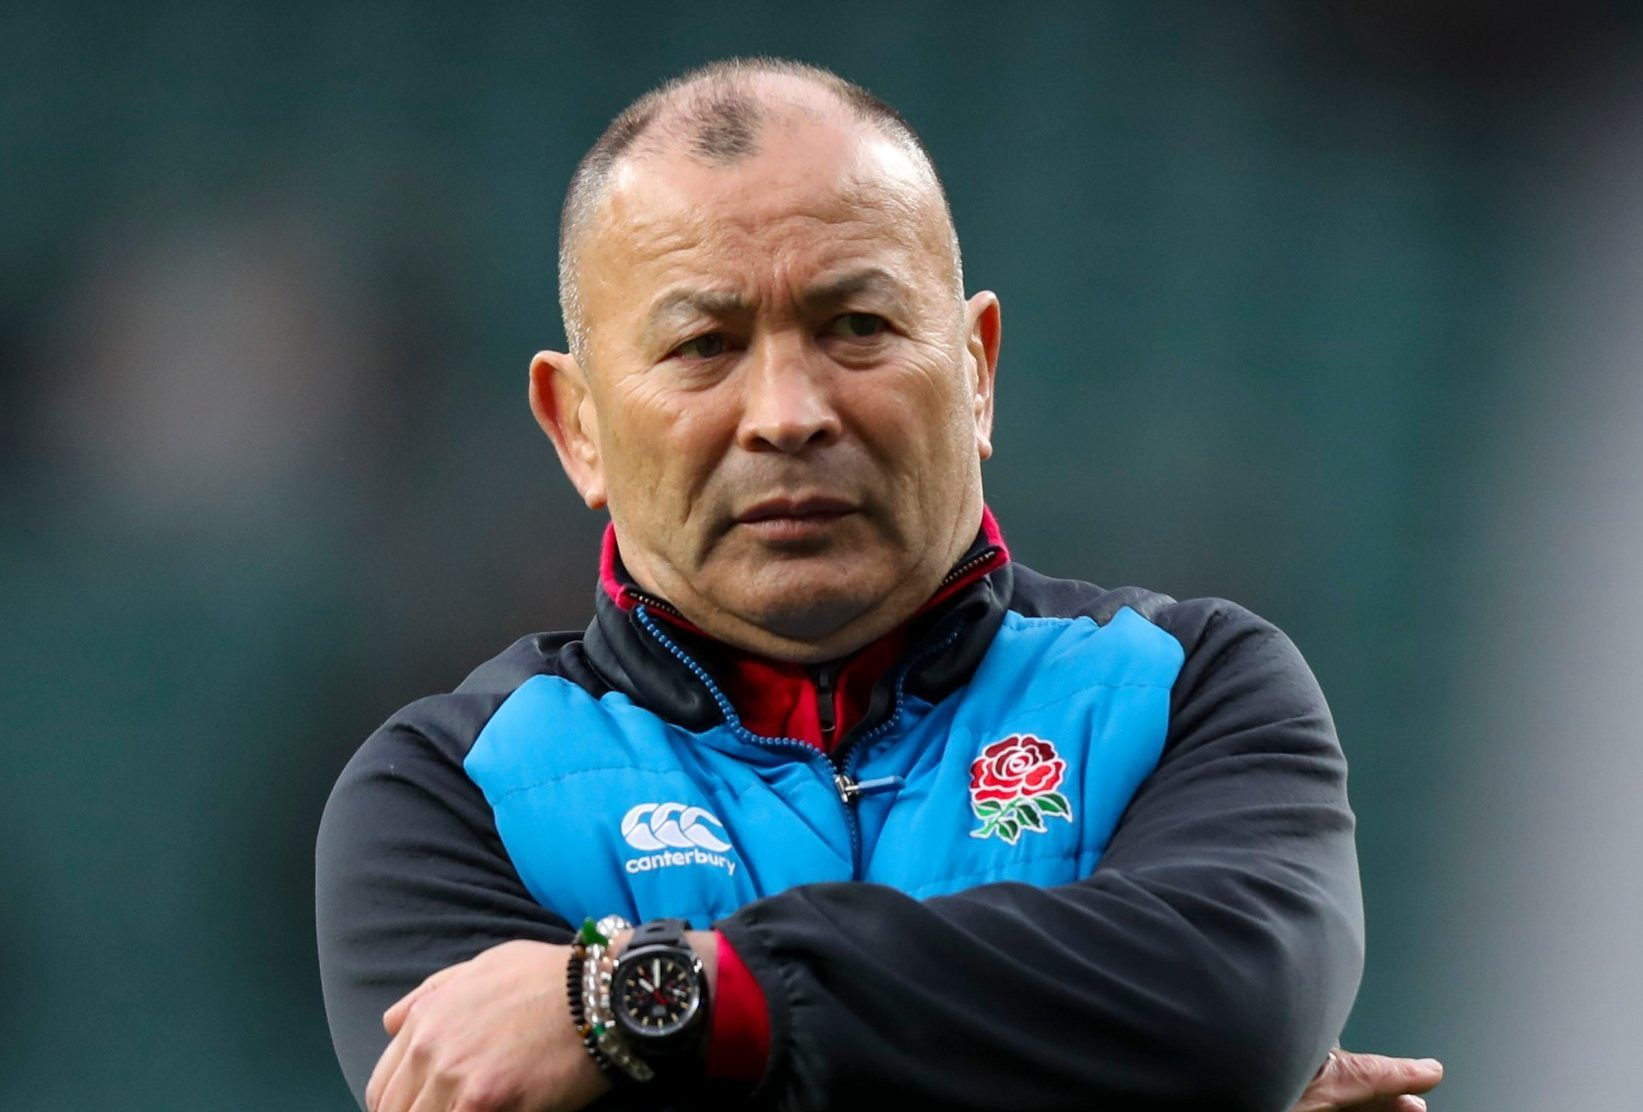 Mandatory Credit: Photo by Jed Leicester/BPI/REX (10157838a) England coach Eddie Jones stretches during the warm up England v Scotland, Guinness Six Nations, Rugby Union, Twickenham Stadium, London, UK - 16 Mar 2019